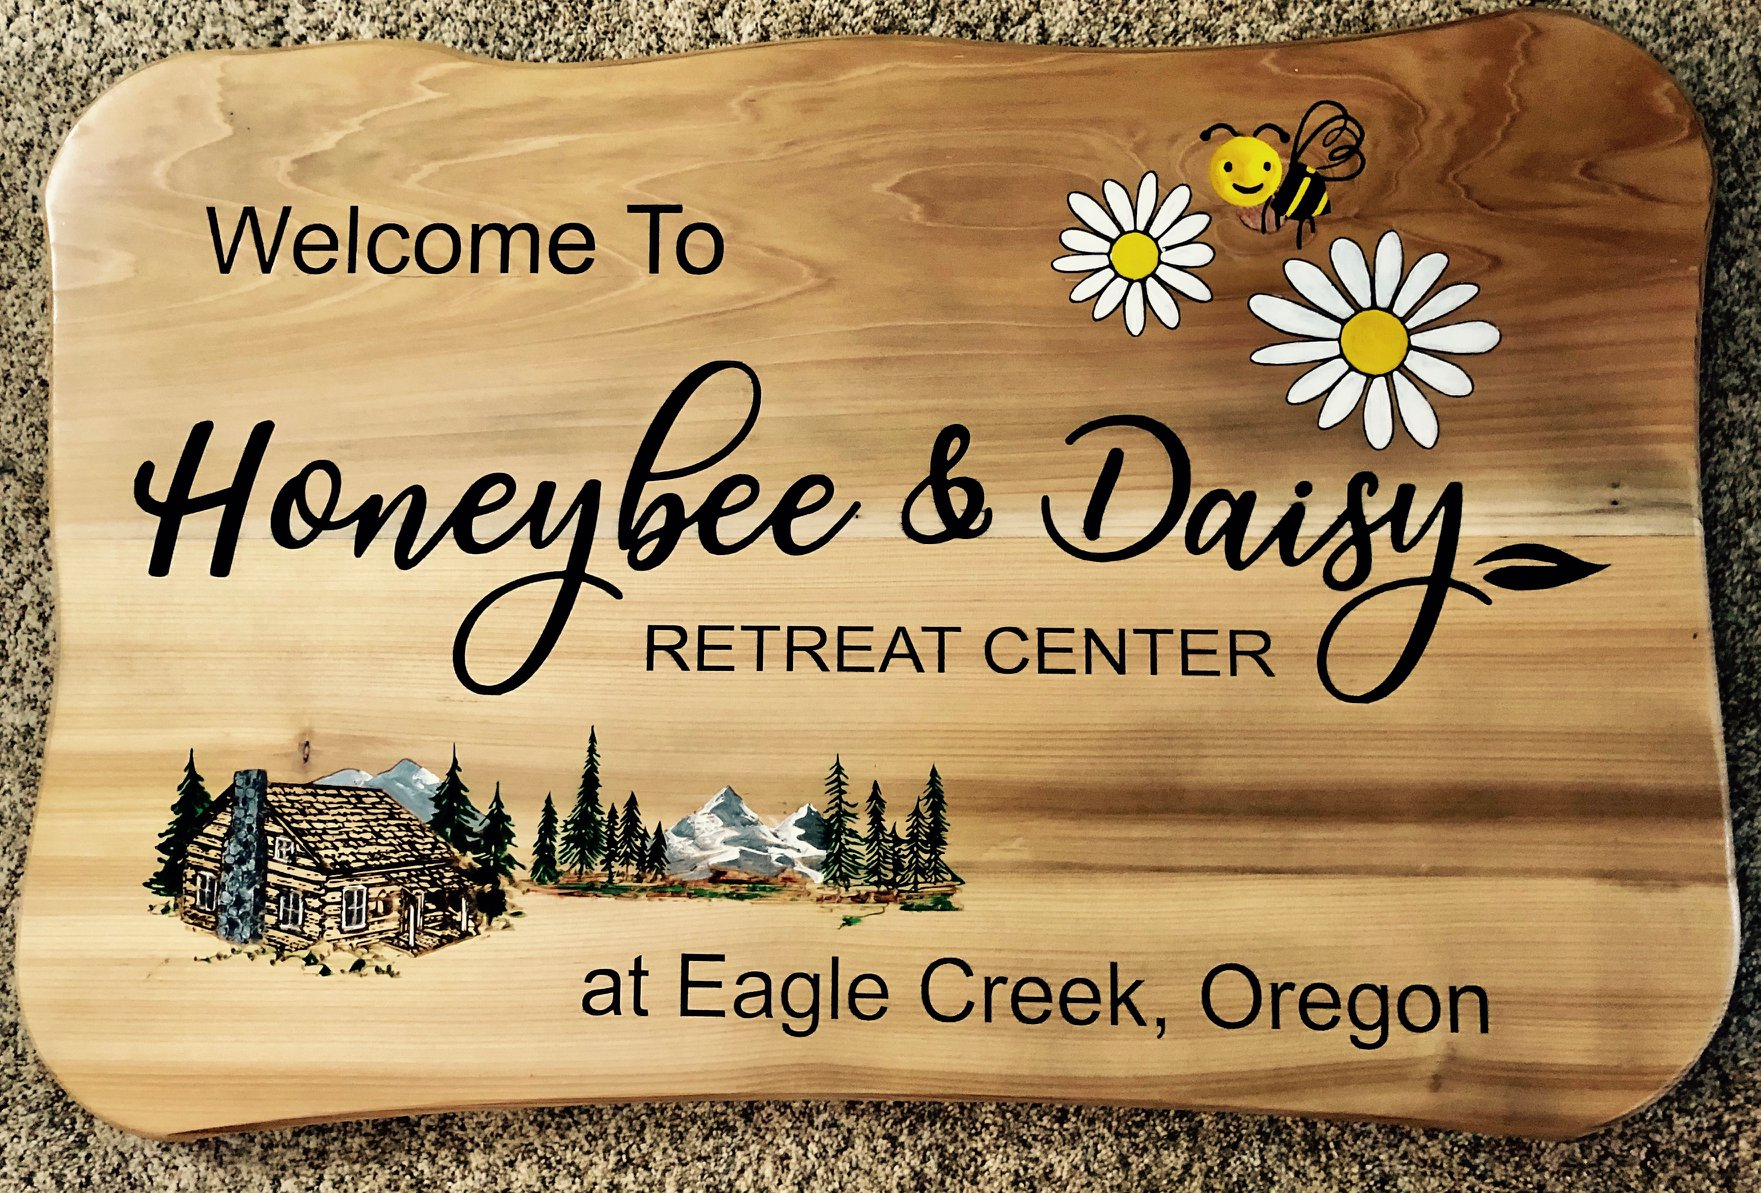 624  outdoor wooden sign for Honeybee & Daisy Oregon Retreat. Graphics for bee, daisies and rustic cabin in mountain scene